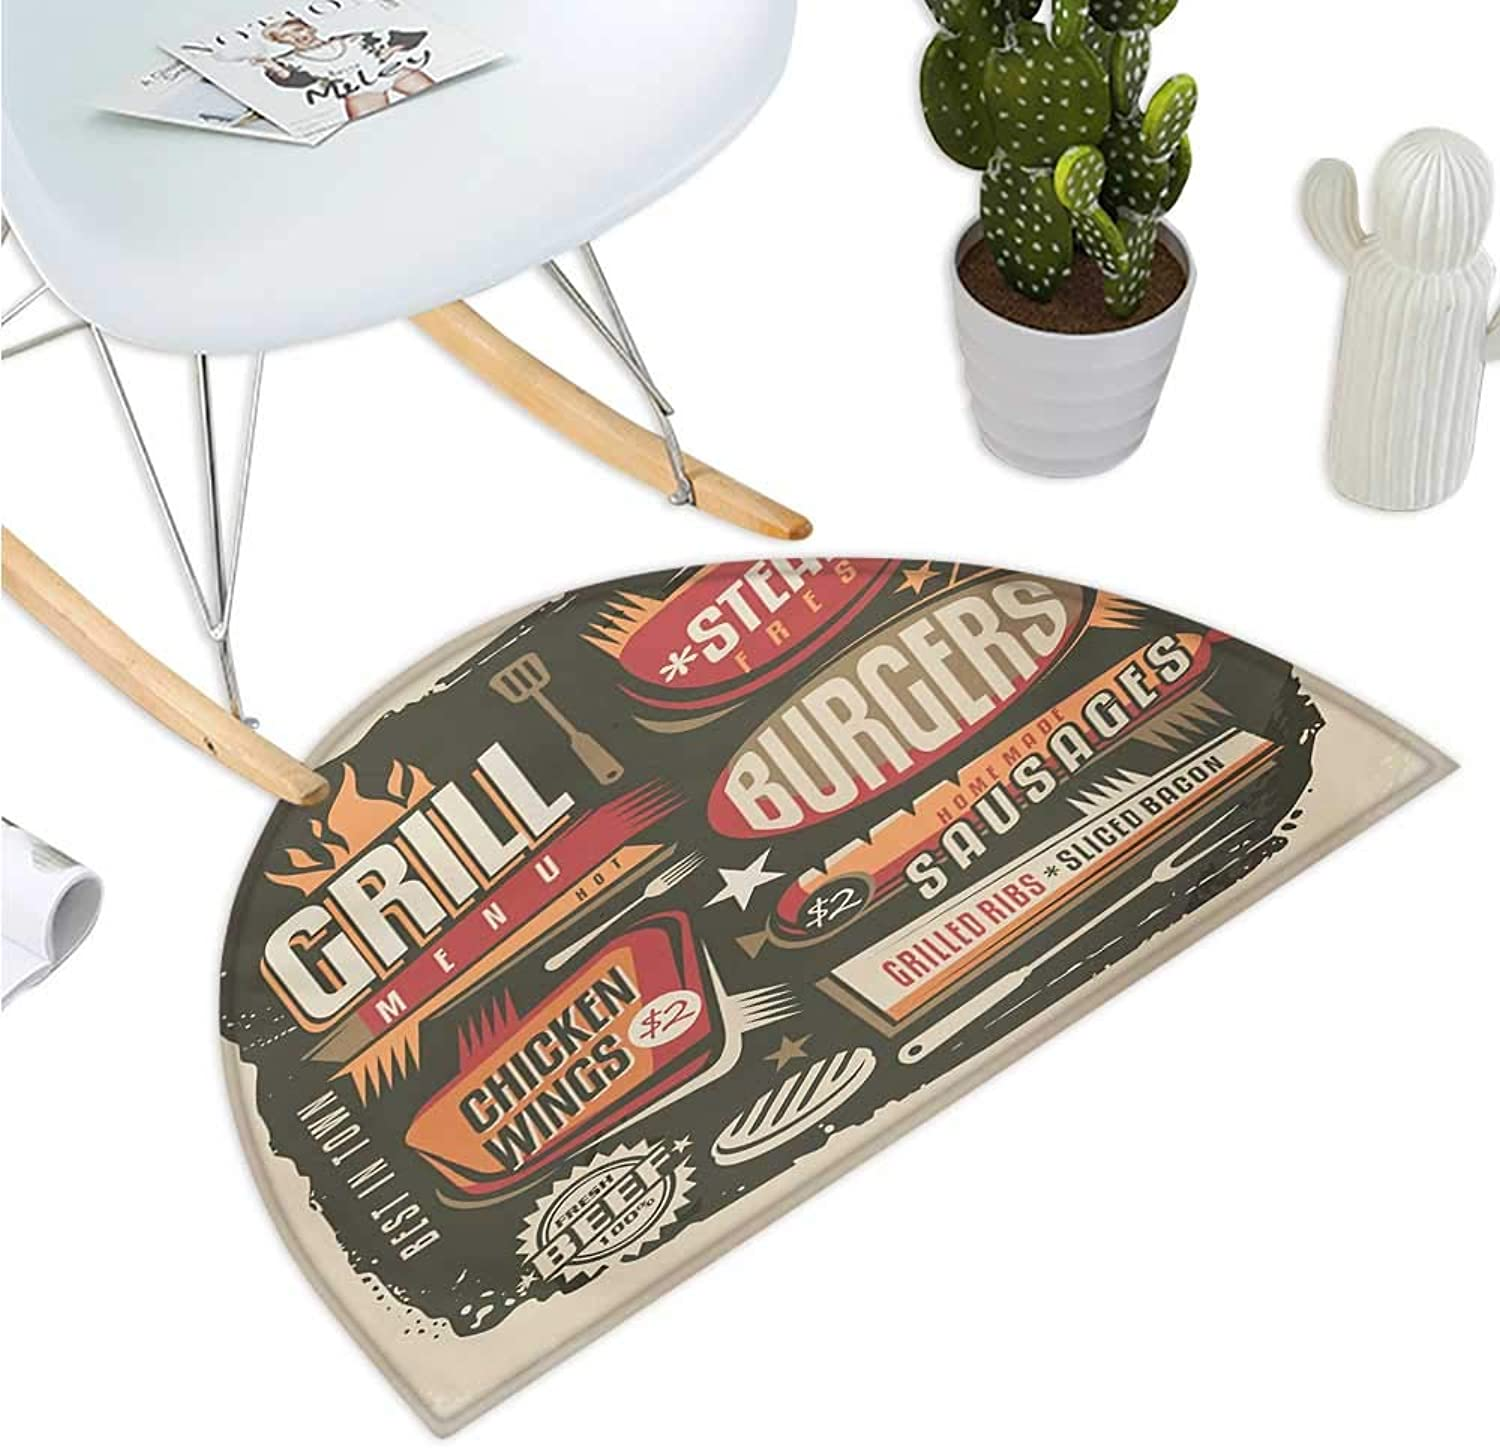 BBQ Party Semicircular Cushion Grill Menu Design with Steaks Burgers Wings Sausages Ribs and Bacon Retro Effect Entry Door Mat H 47.2  xD 70.8  Multicolor